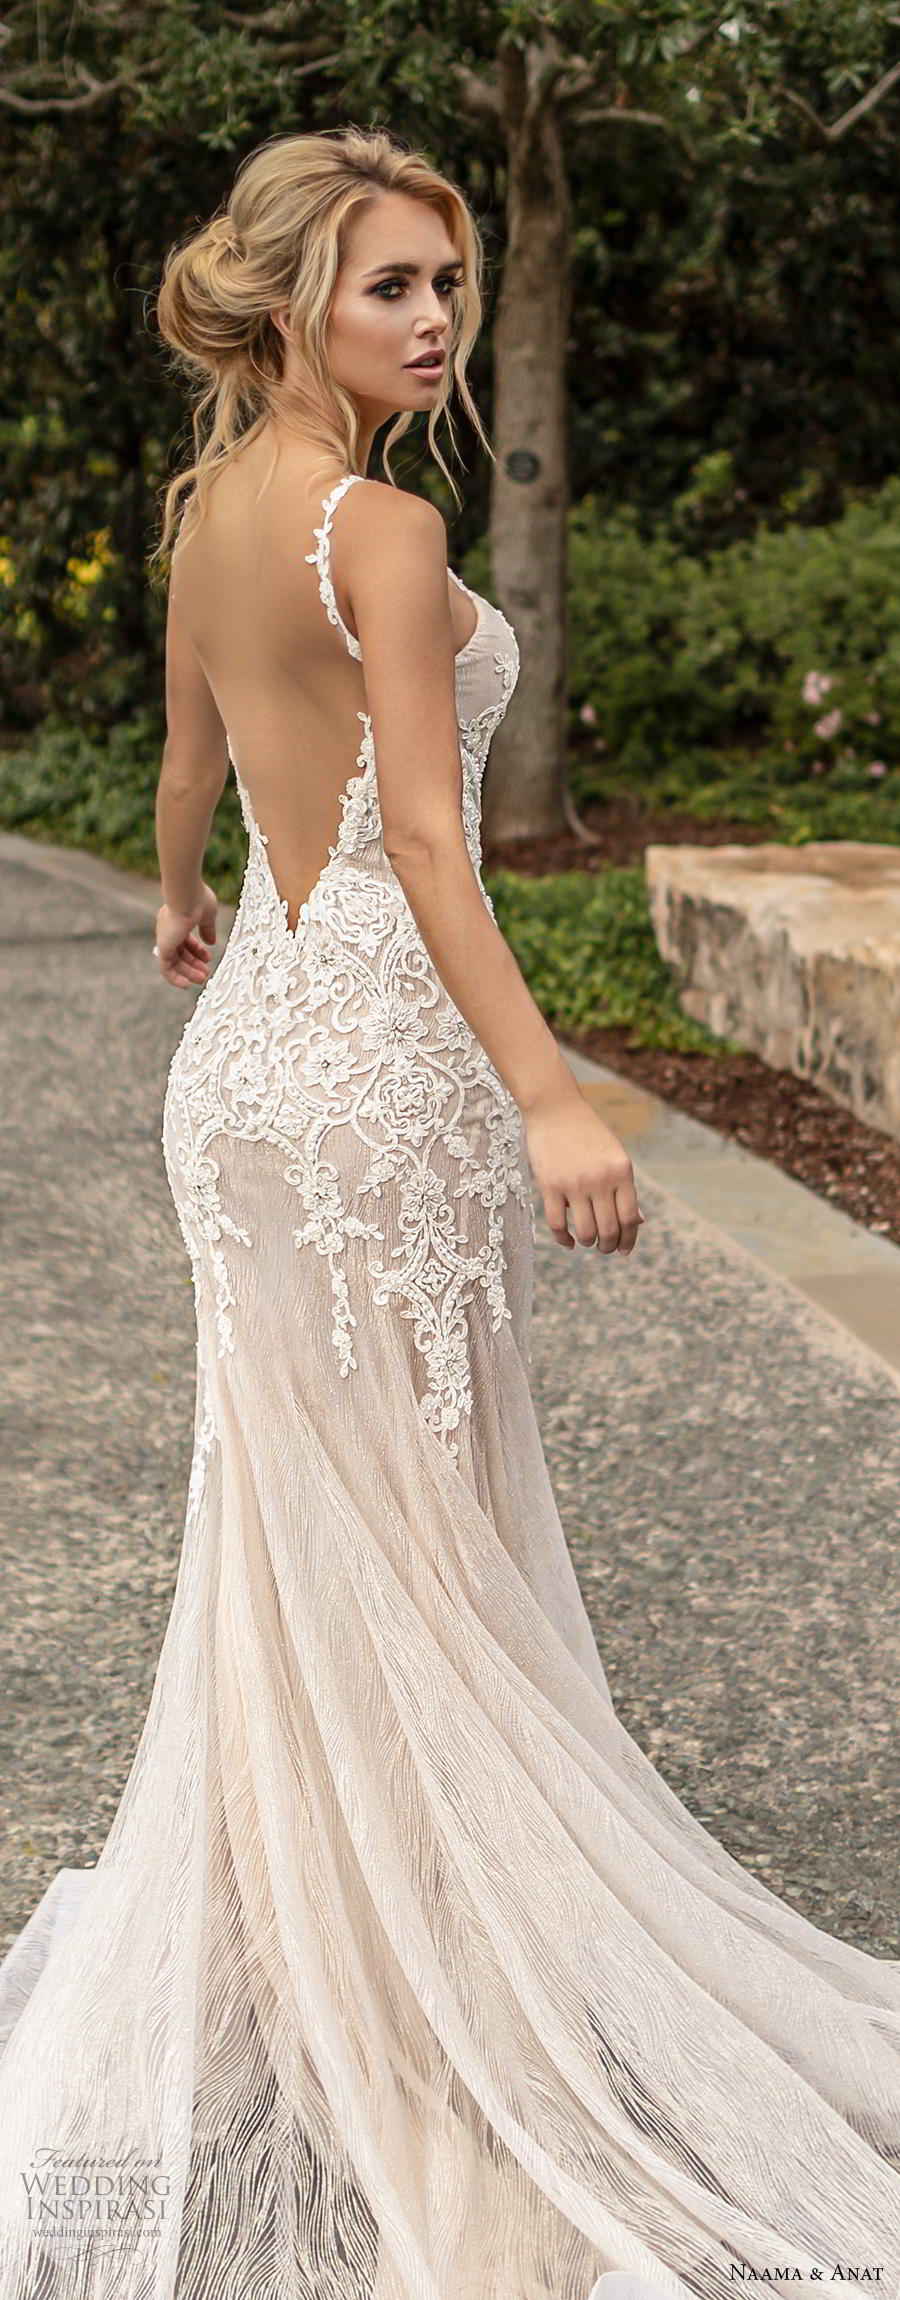 naama anat fall 2019 couture bridal sleeveless thin strap deep v neck heavily embellished bodice elegant fit and flare wedding dress open low back backless chapel train (2) lbv